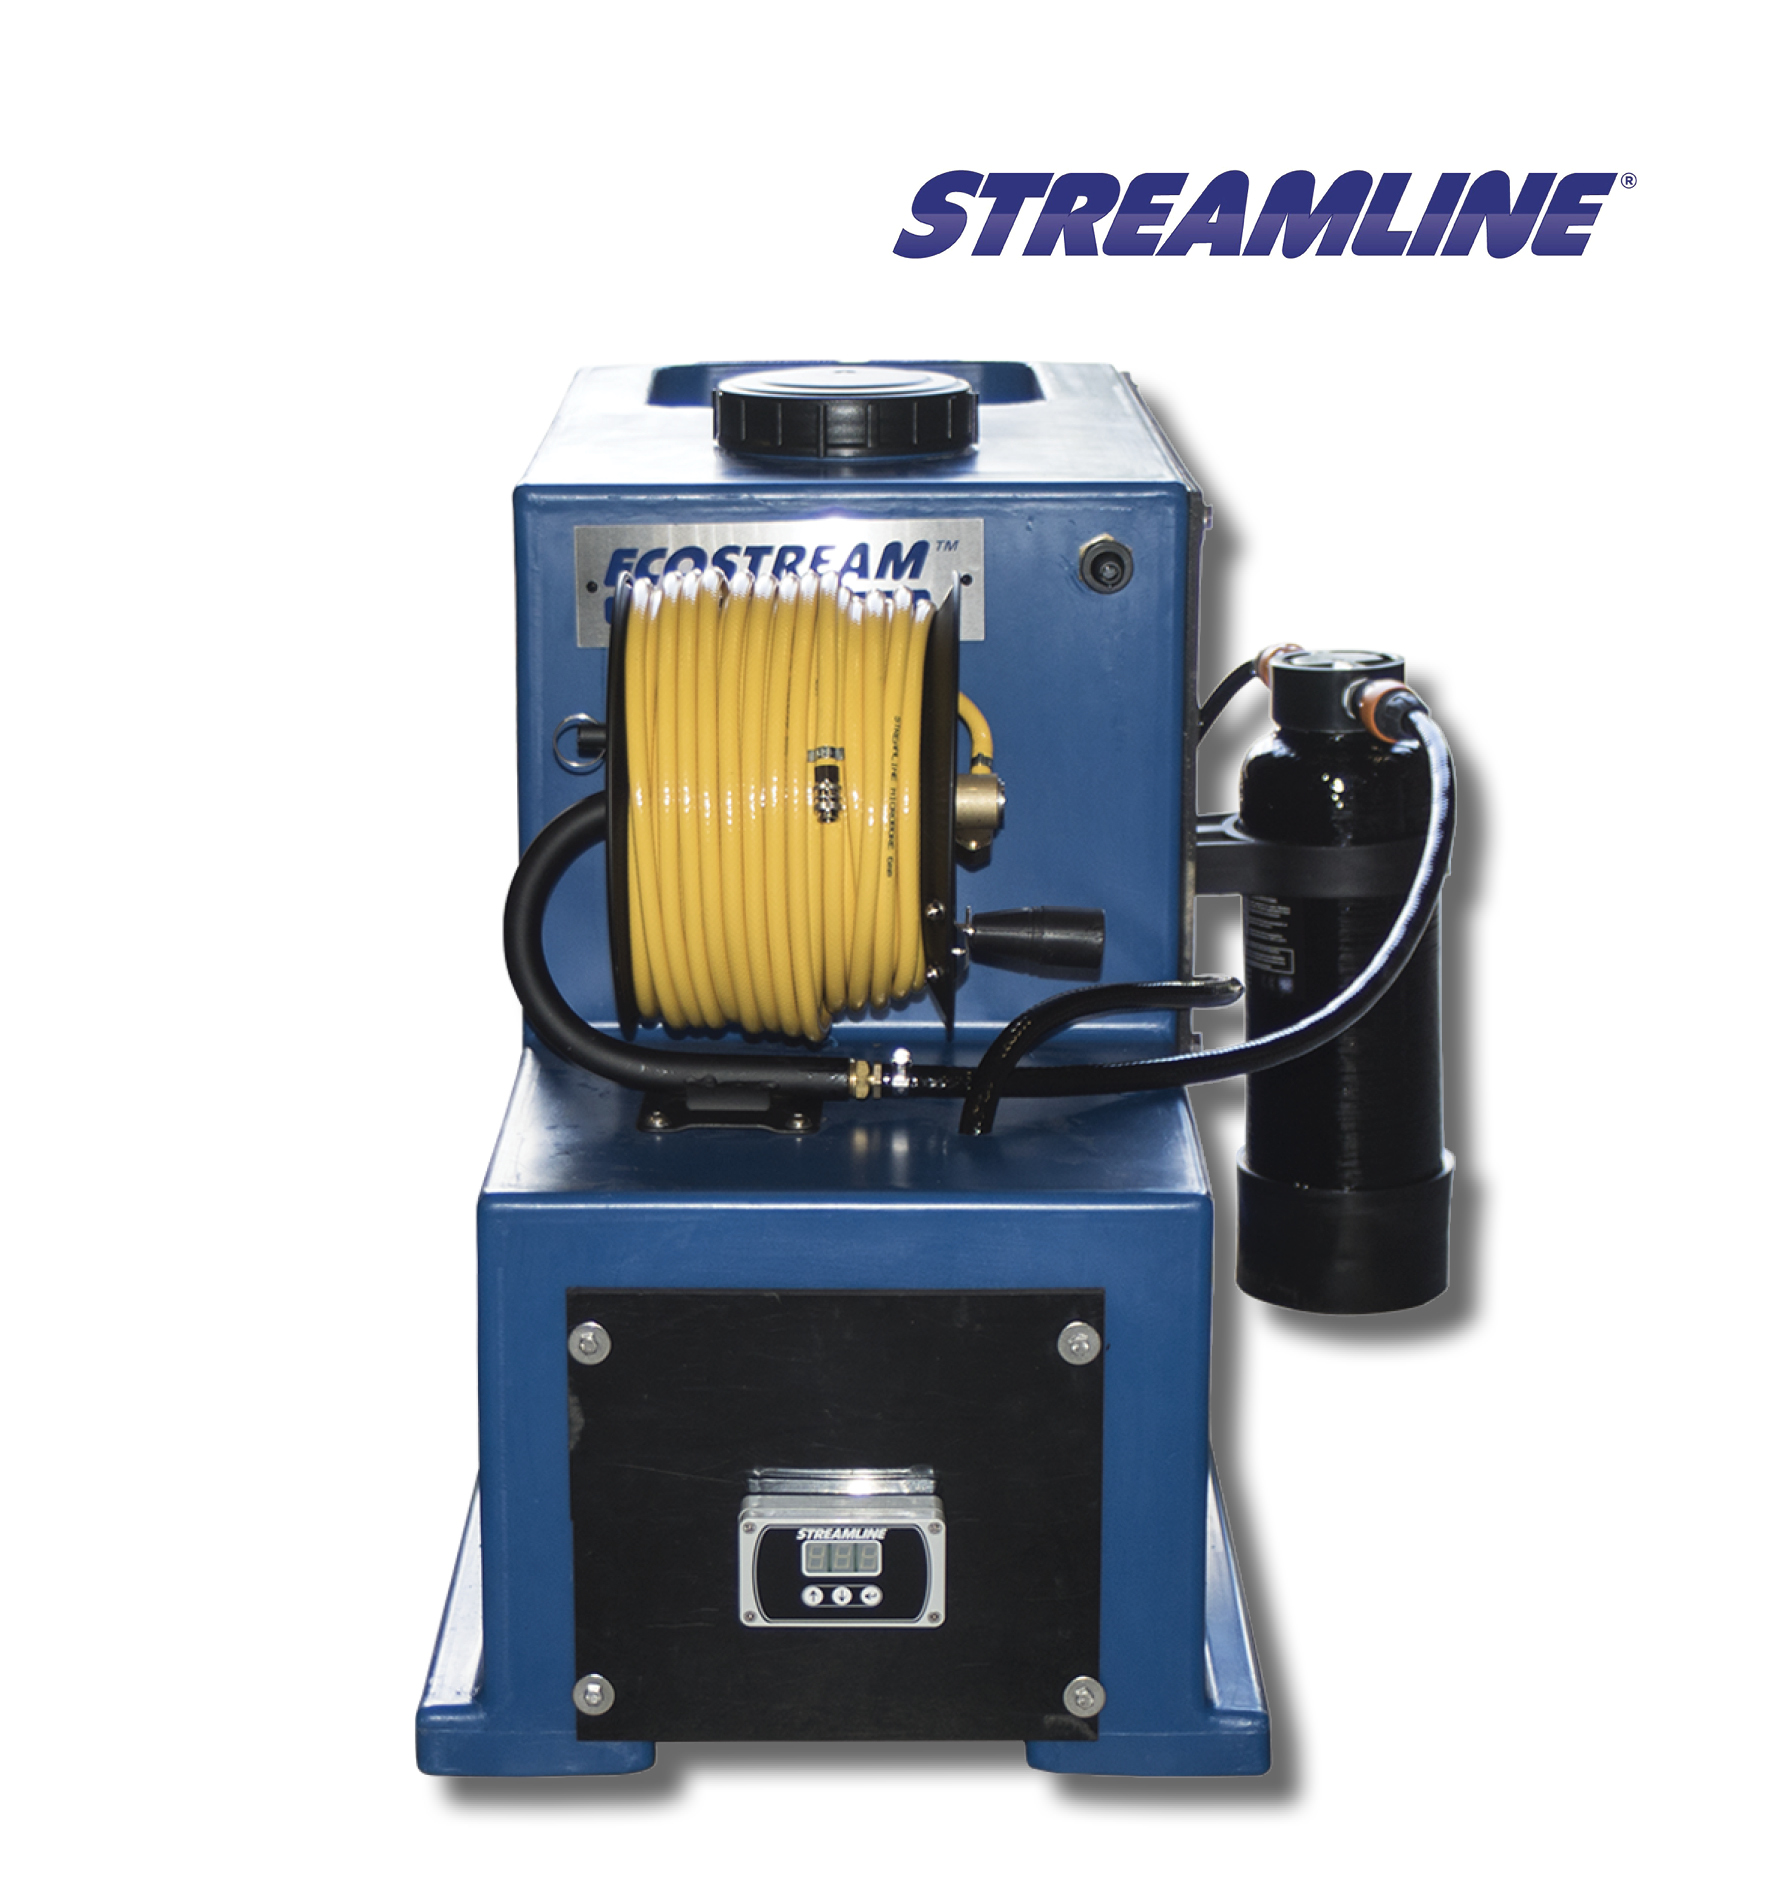 Streamline Ecostream 250 Litre Window Cleaning Tank System